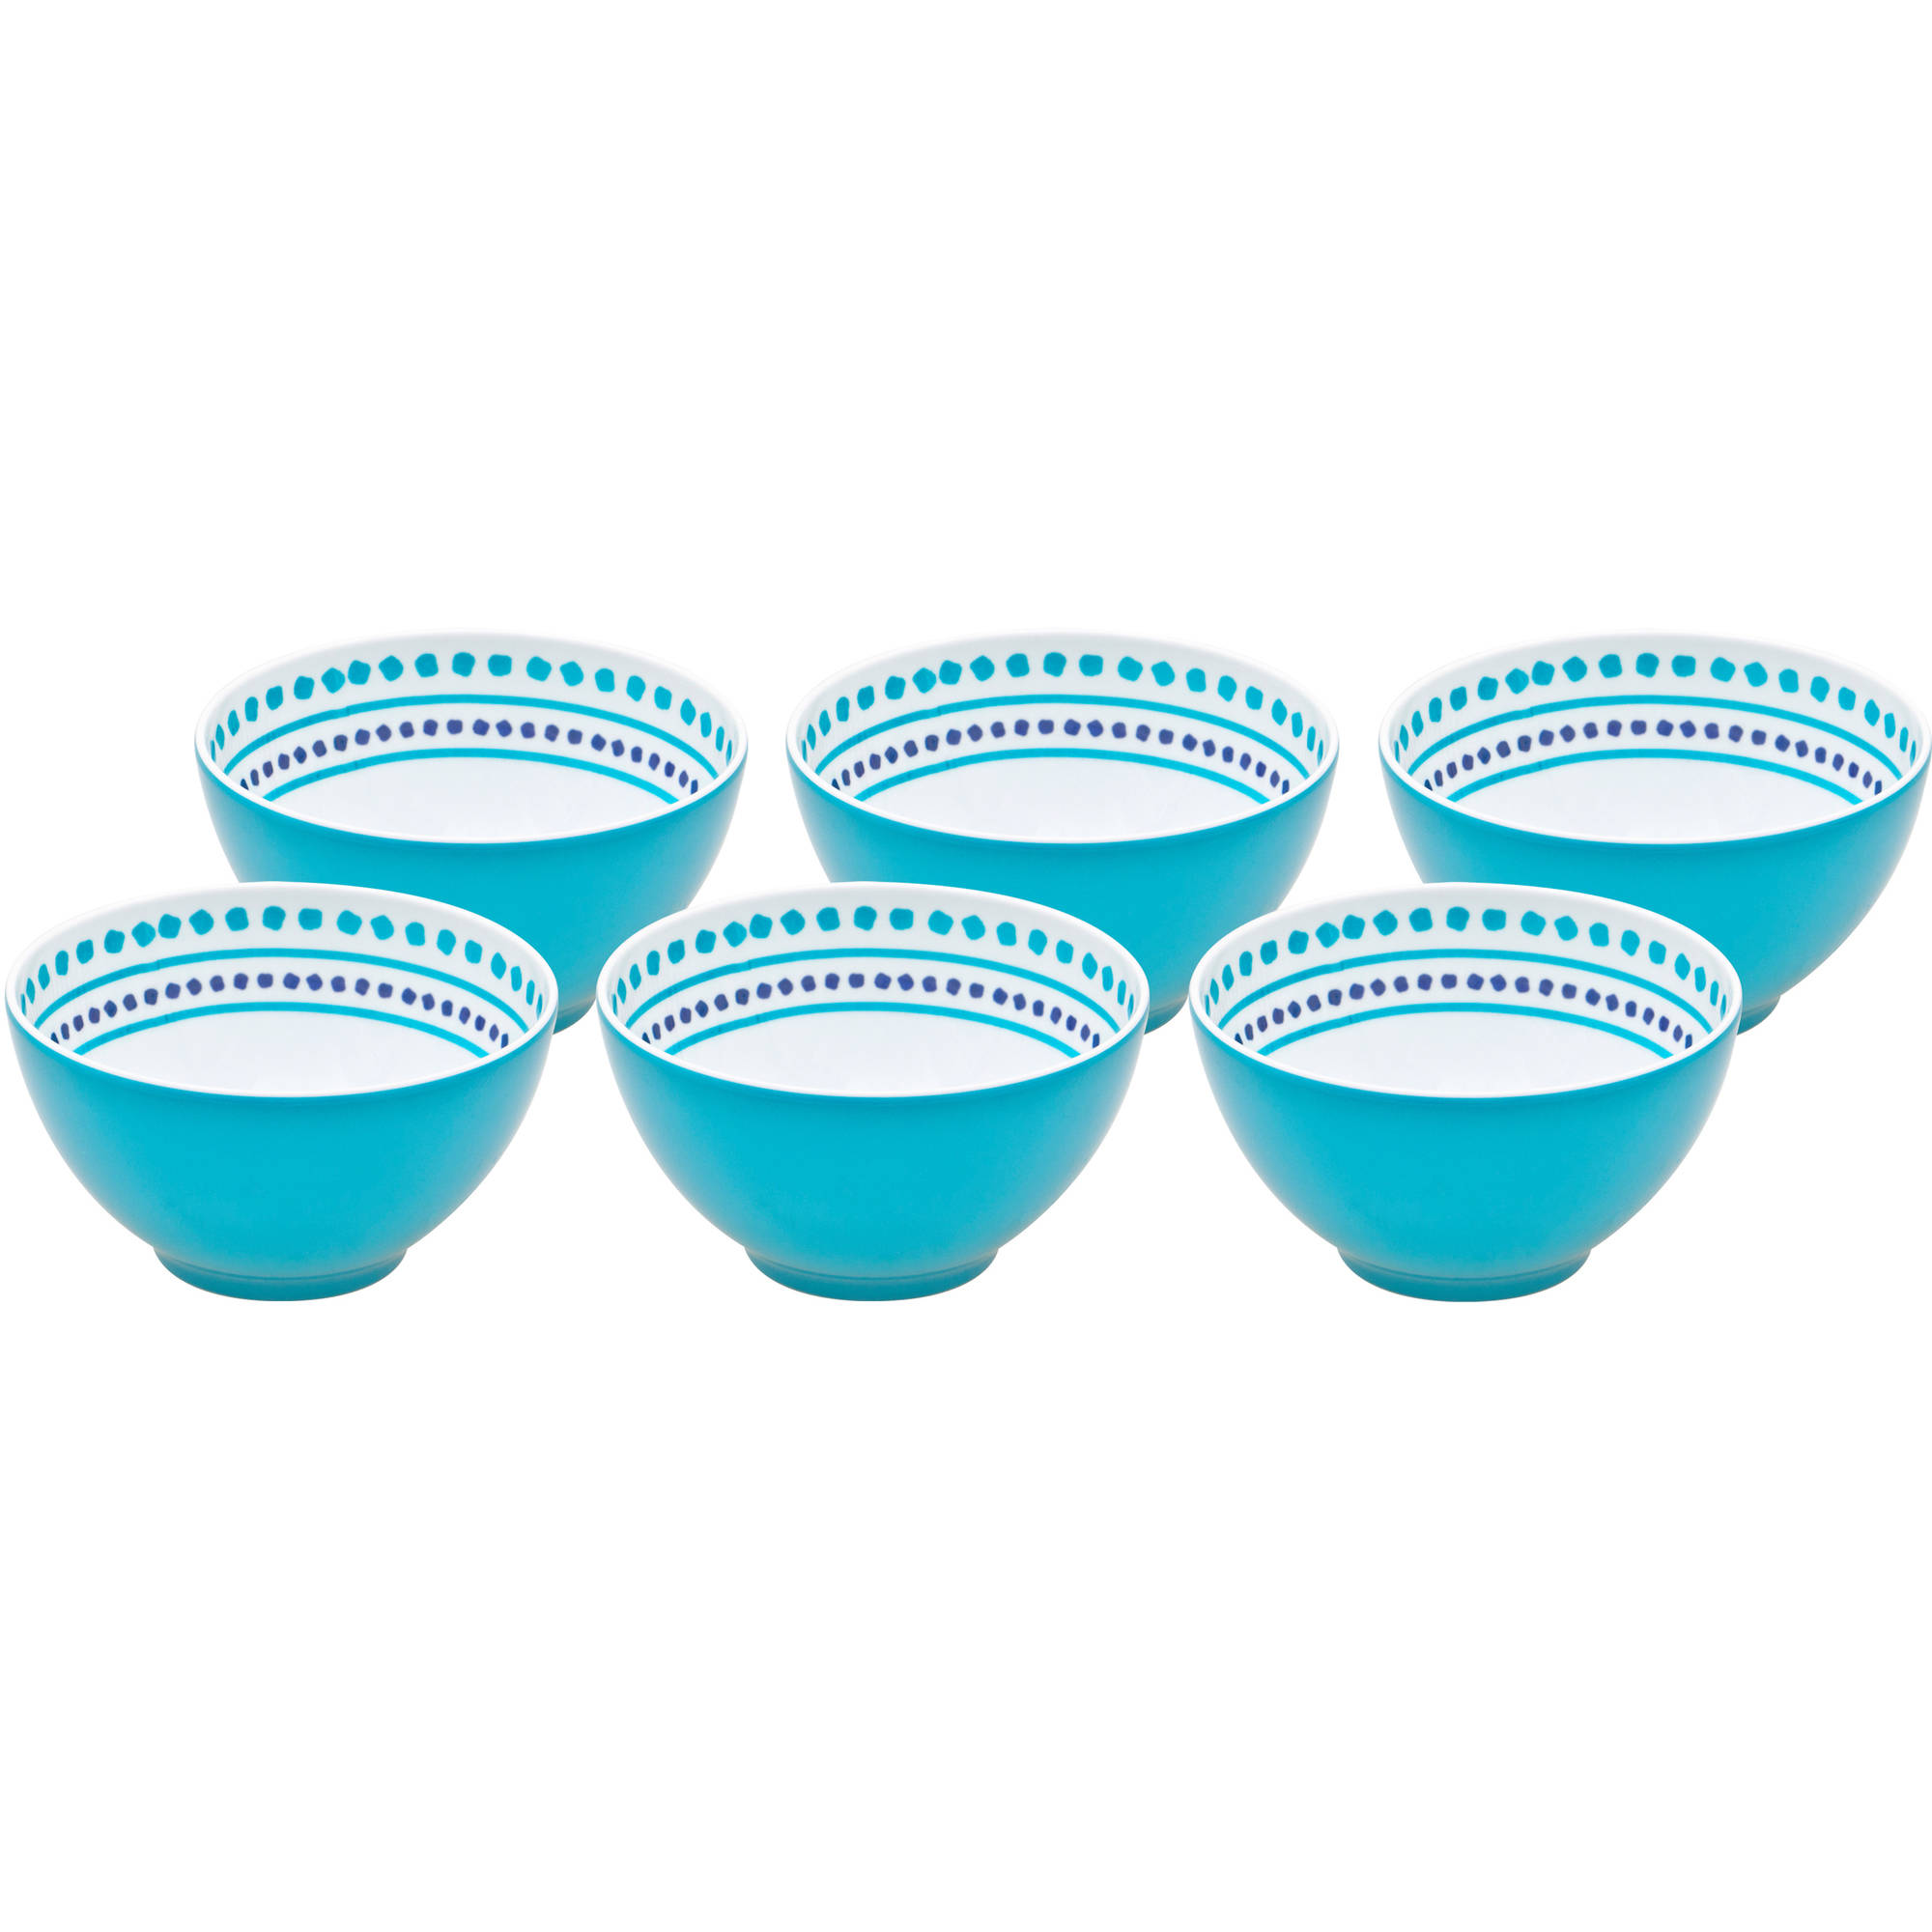 Better Homes and Gardens Teal Trellis Print Melamine Berry Bowl, 6pk